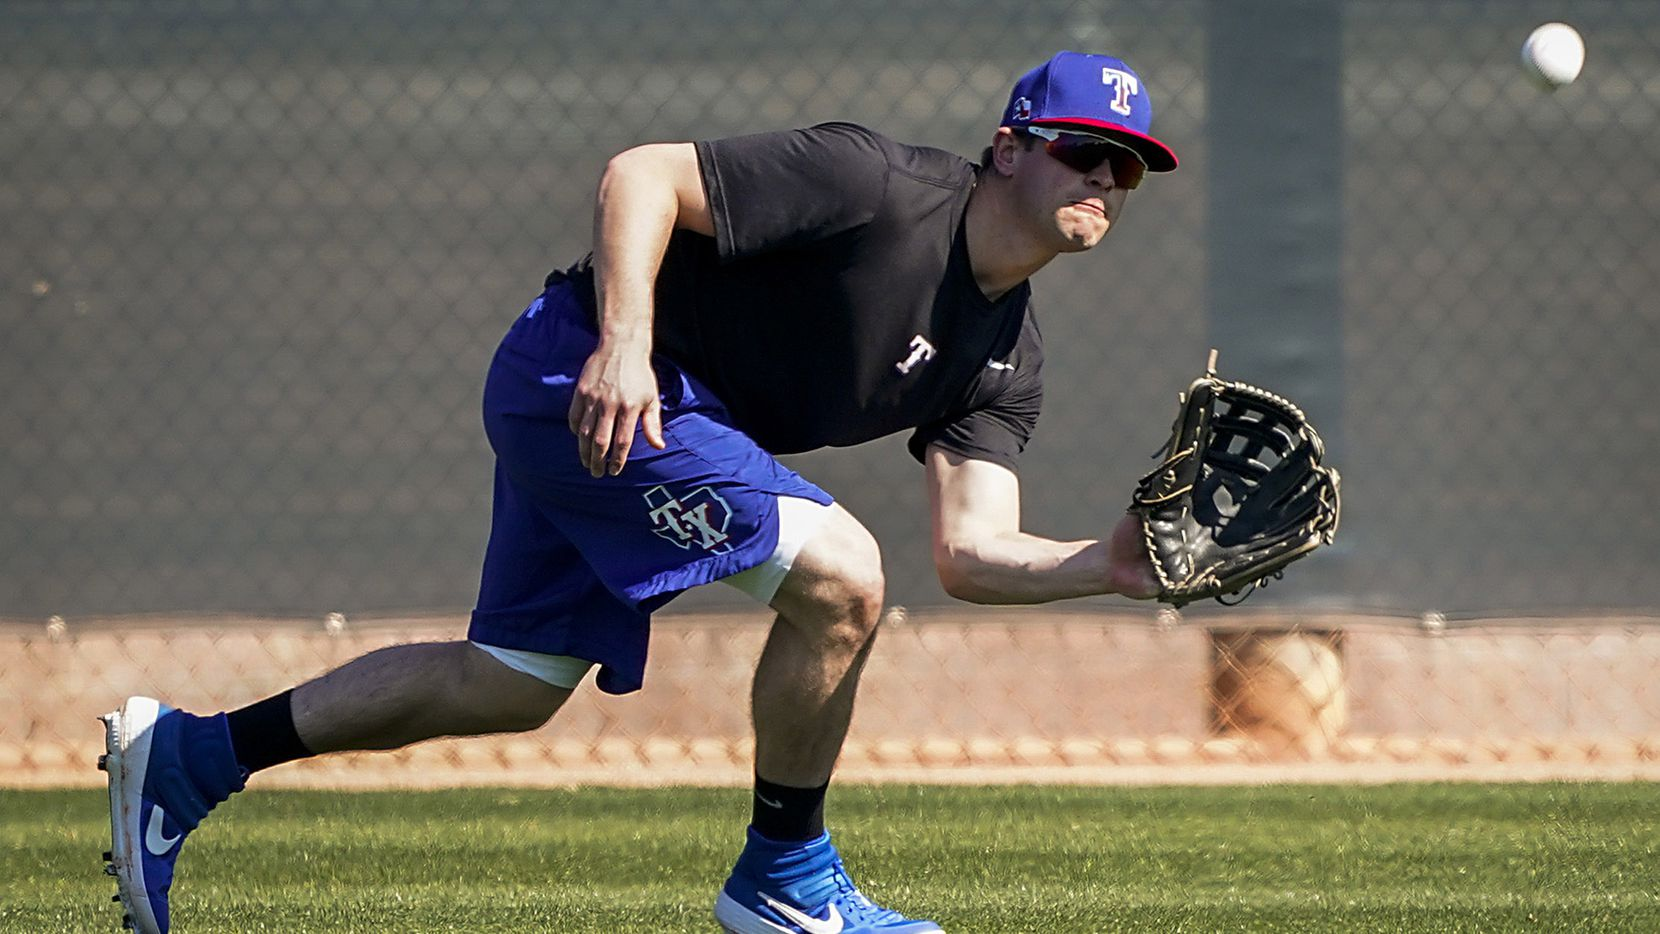 Texas Rangers infielder Nick Solak shags balls in center field during a spring training workout at the team's training facility on Thursday, Feb. 13, 2020, in Surprise, Ariz.